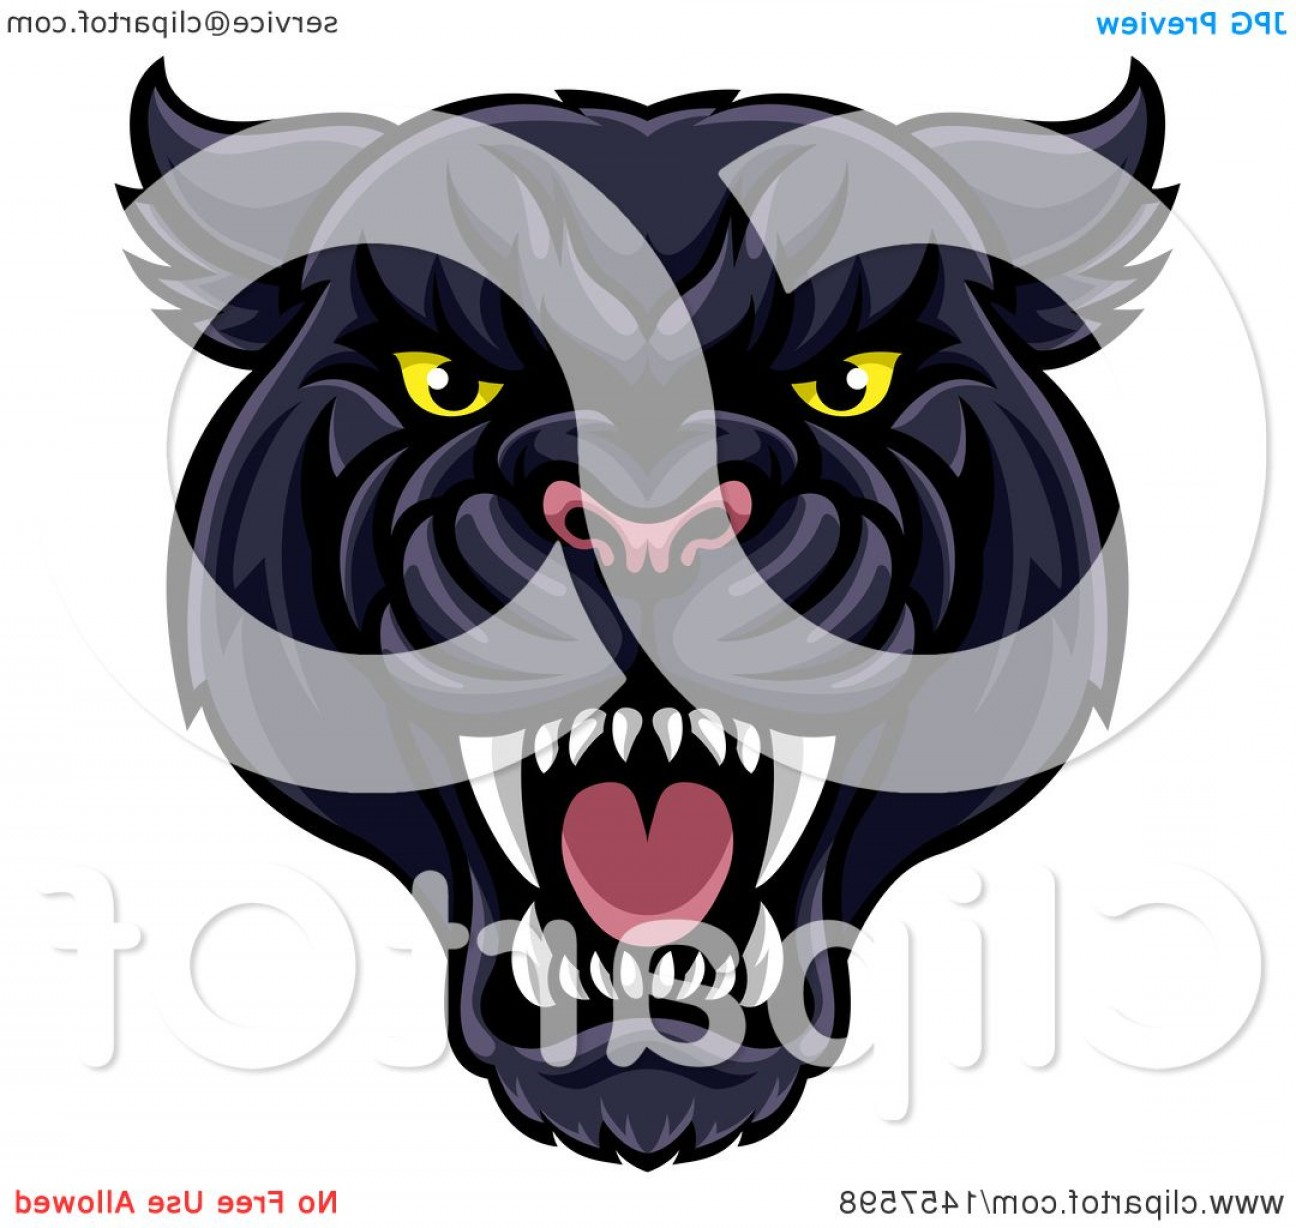 Panther Vector: Vicious Roaring Black Panther Mascot Head